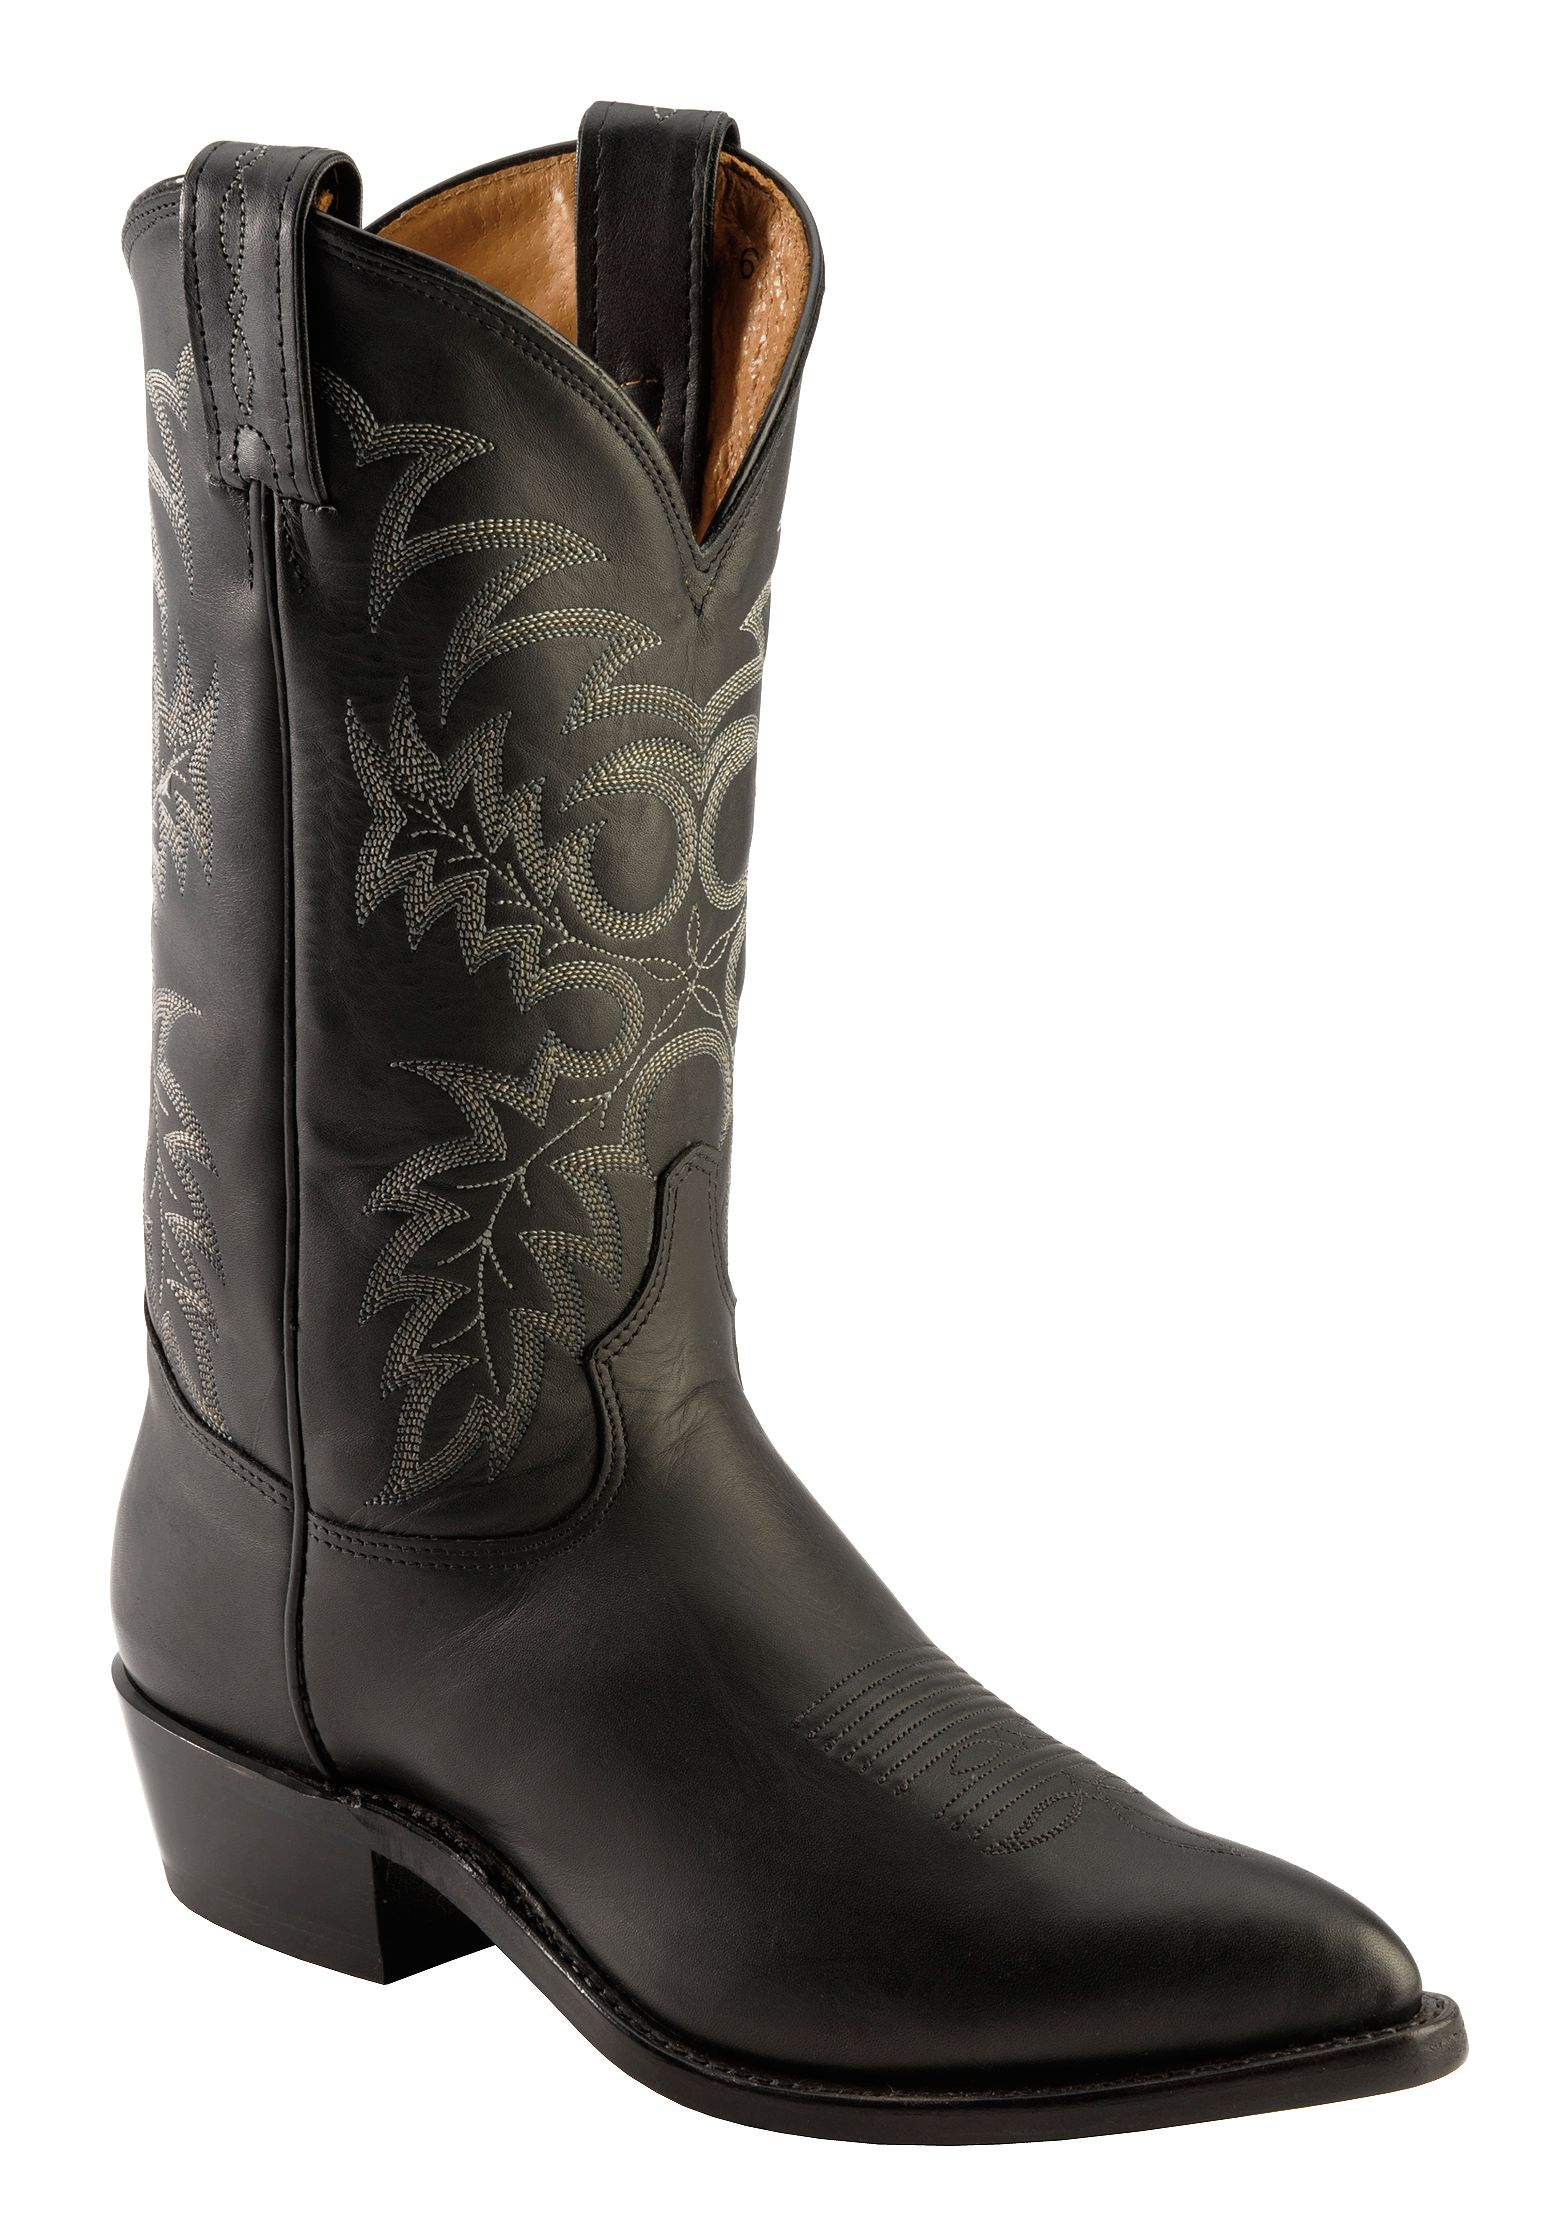 Tony Lama Americana Stallion Western Boots Pointed Toe